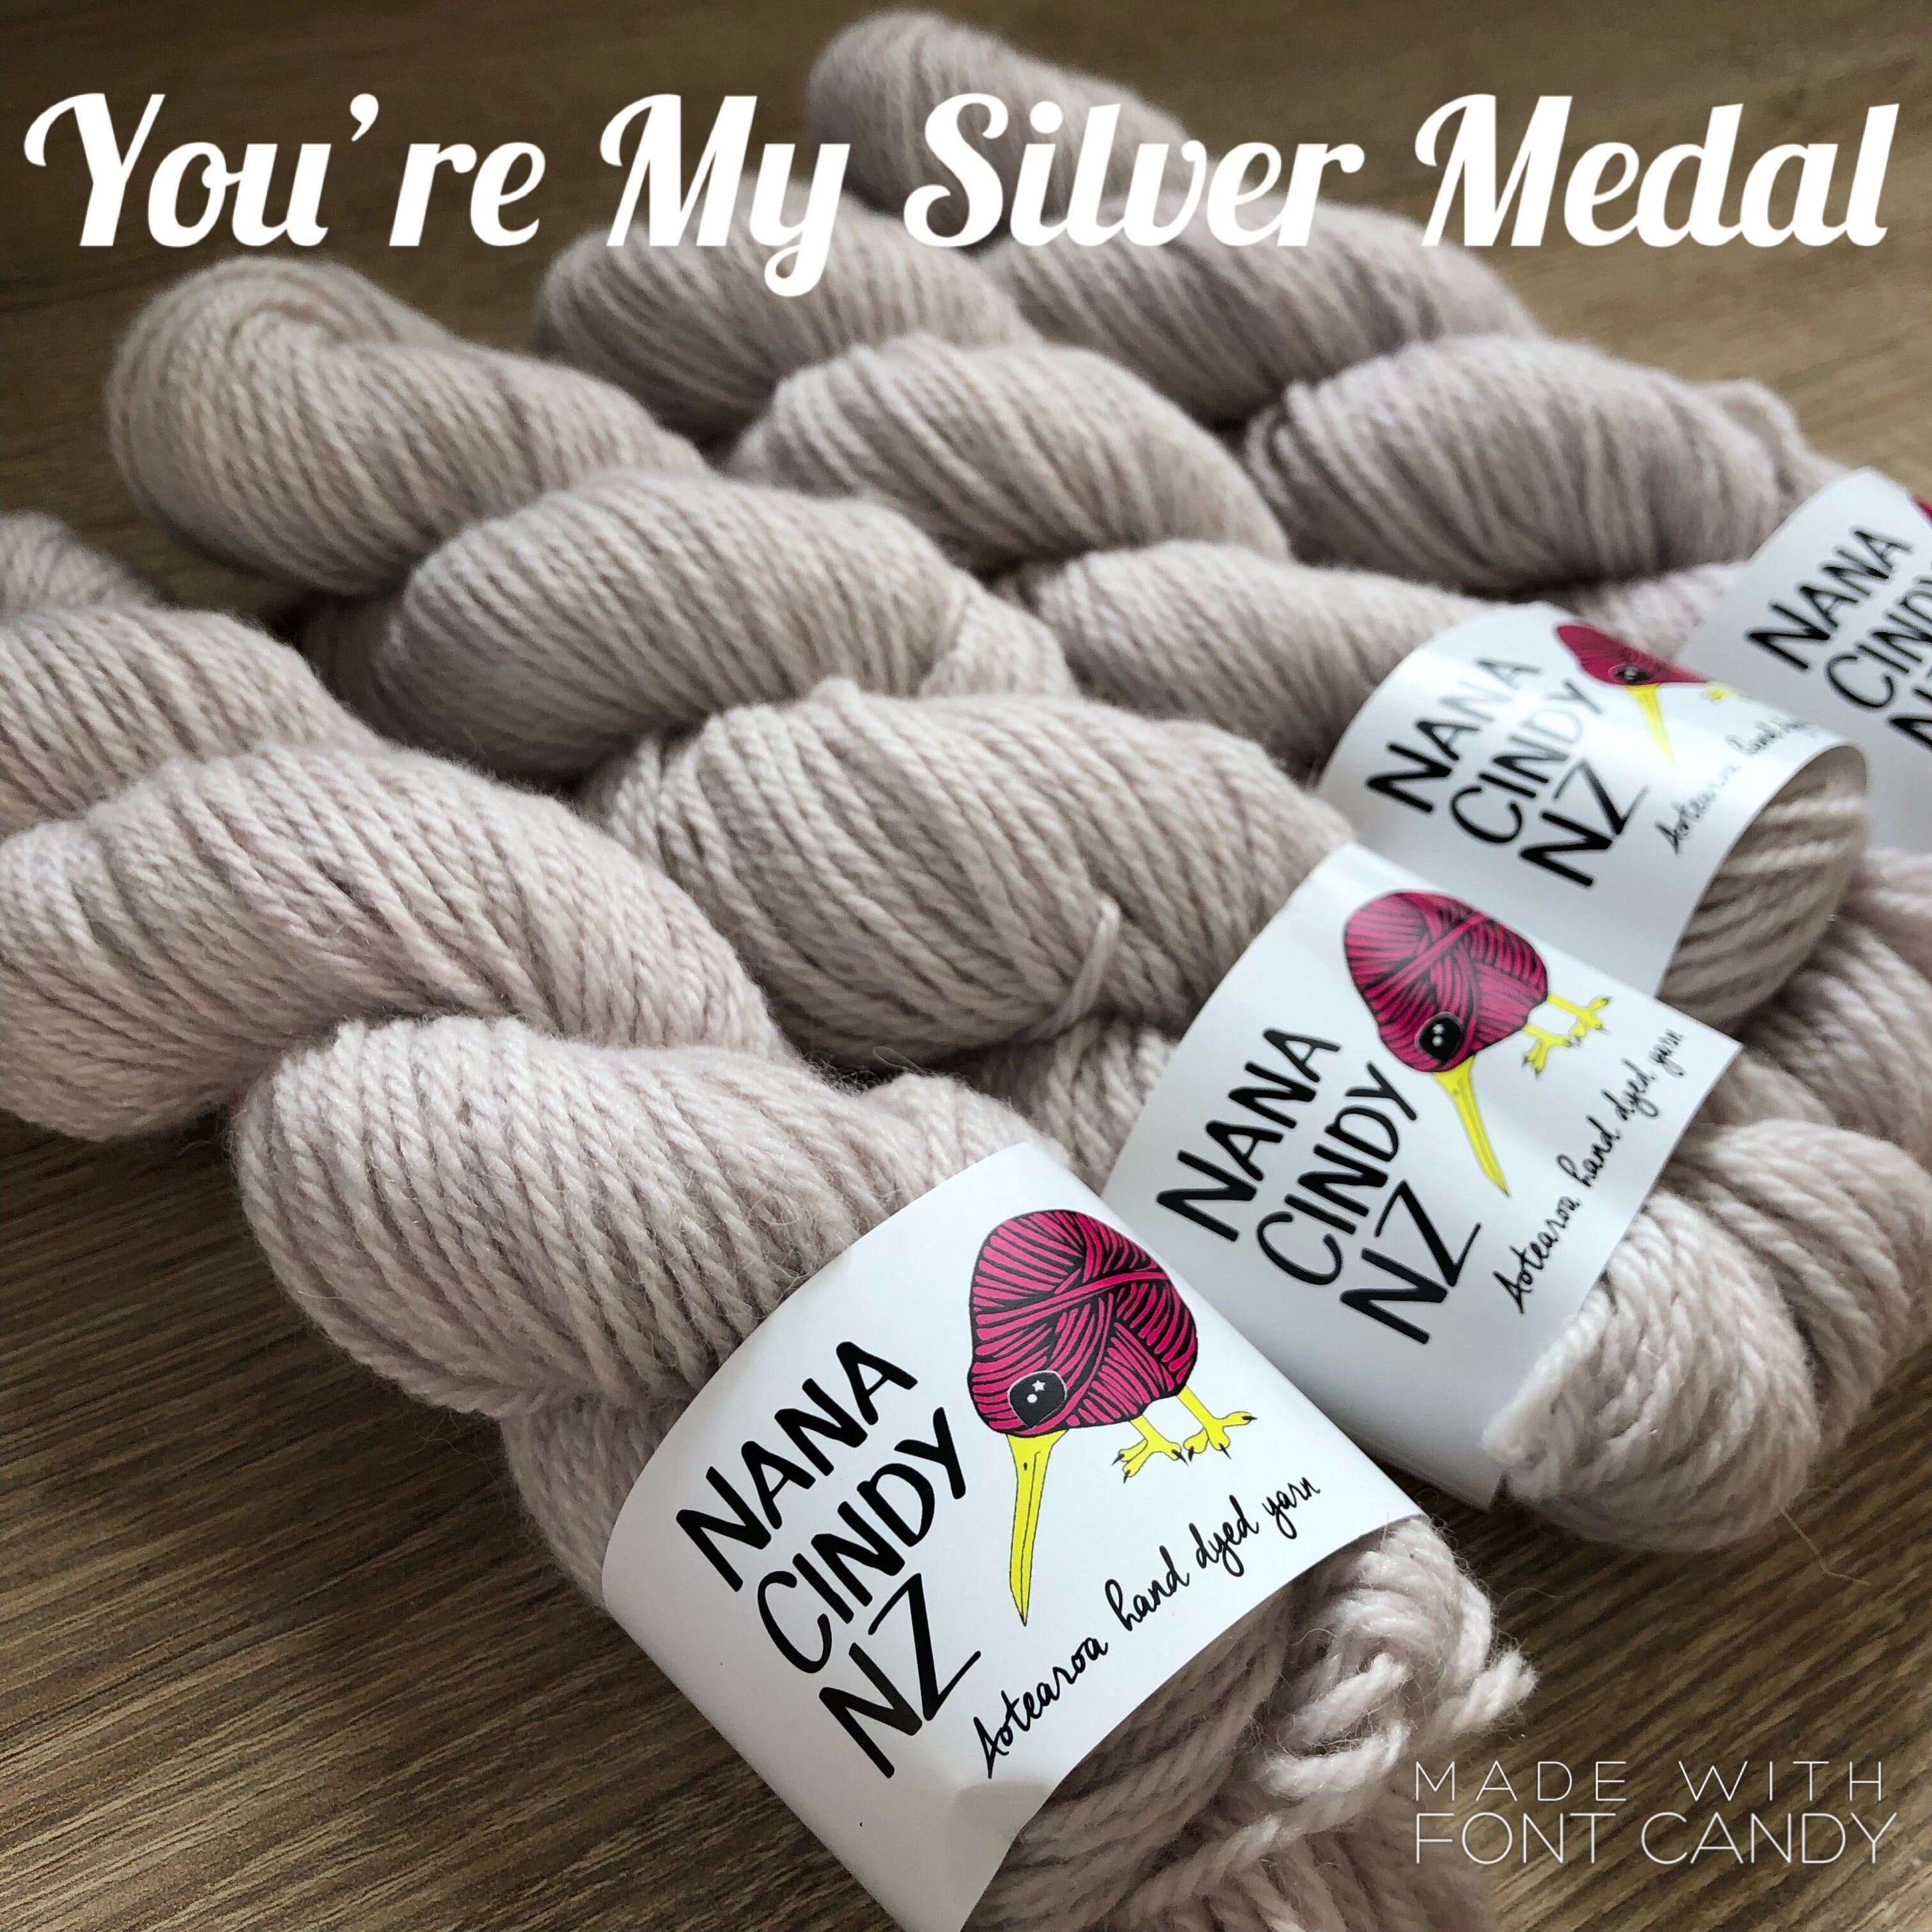 You're My Silver Medal - Sumptuous - The Woven Nana-Cindy Exclusive